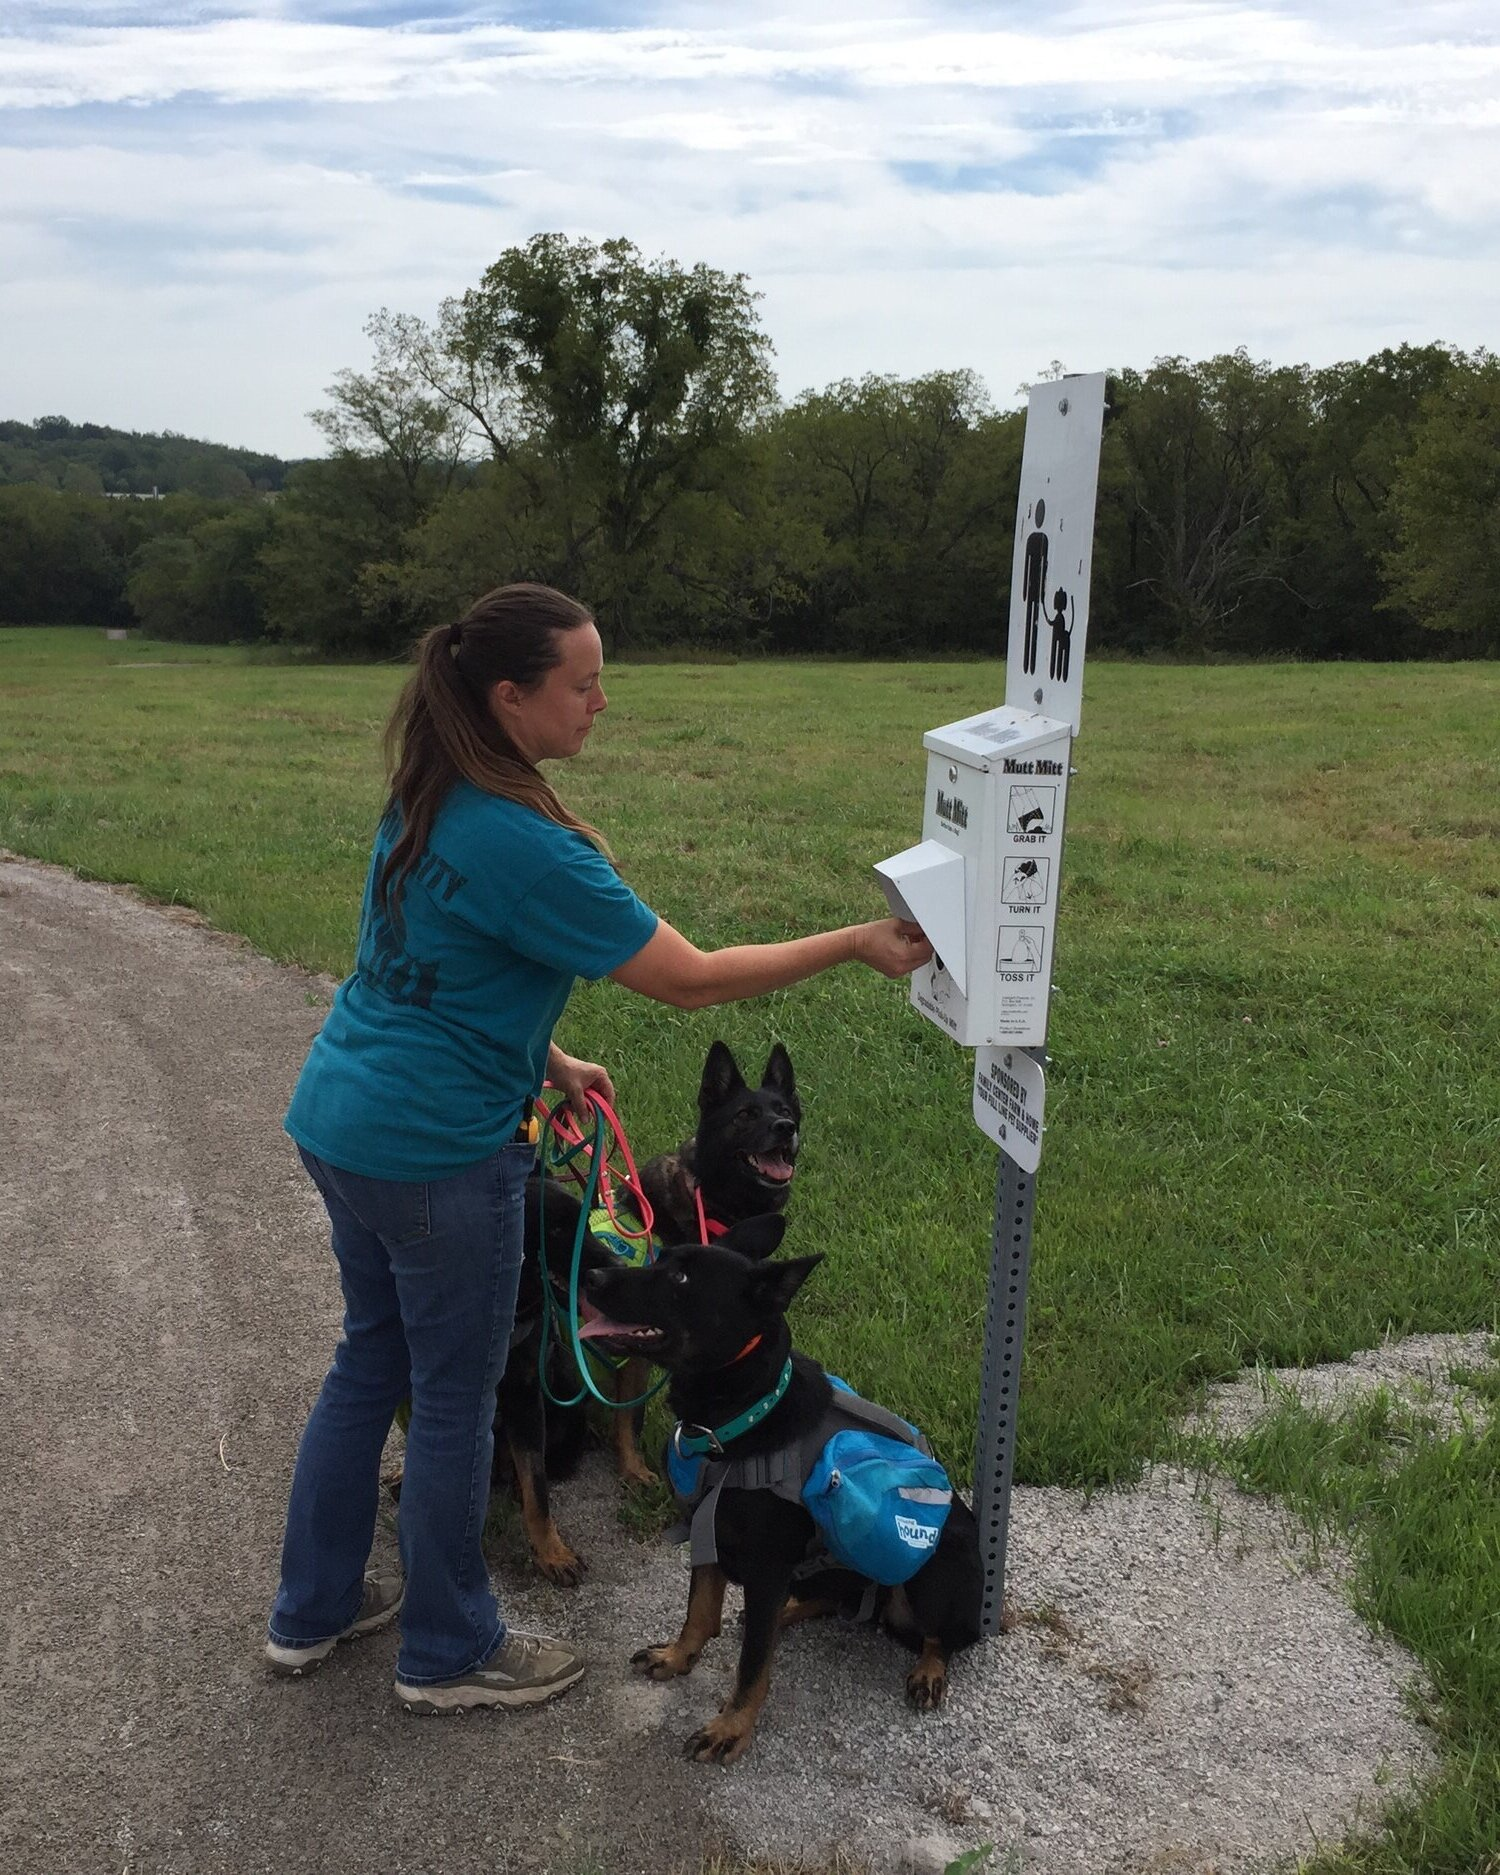 Conscientious dog owner prepares for a walk